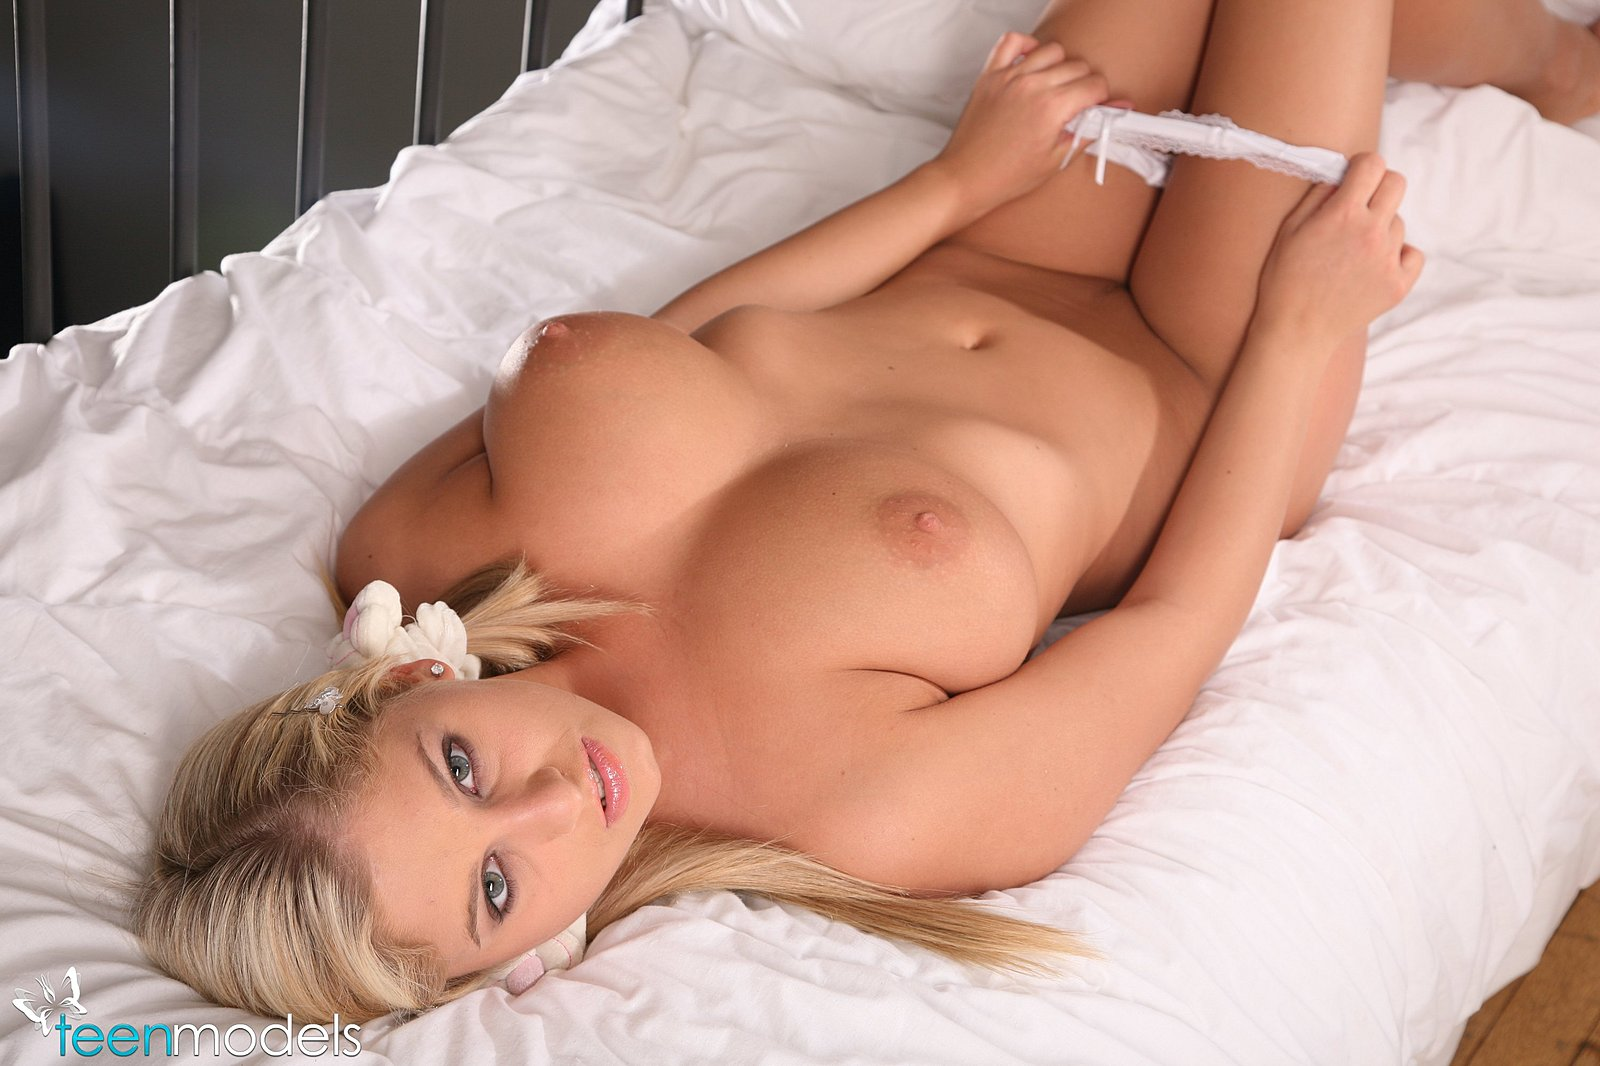 girls in teenage bed nude